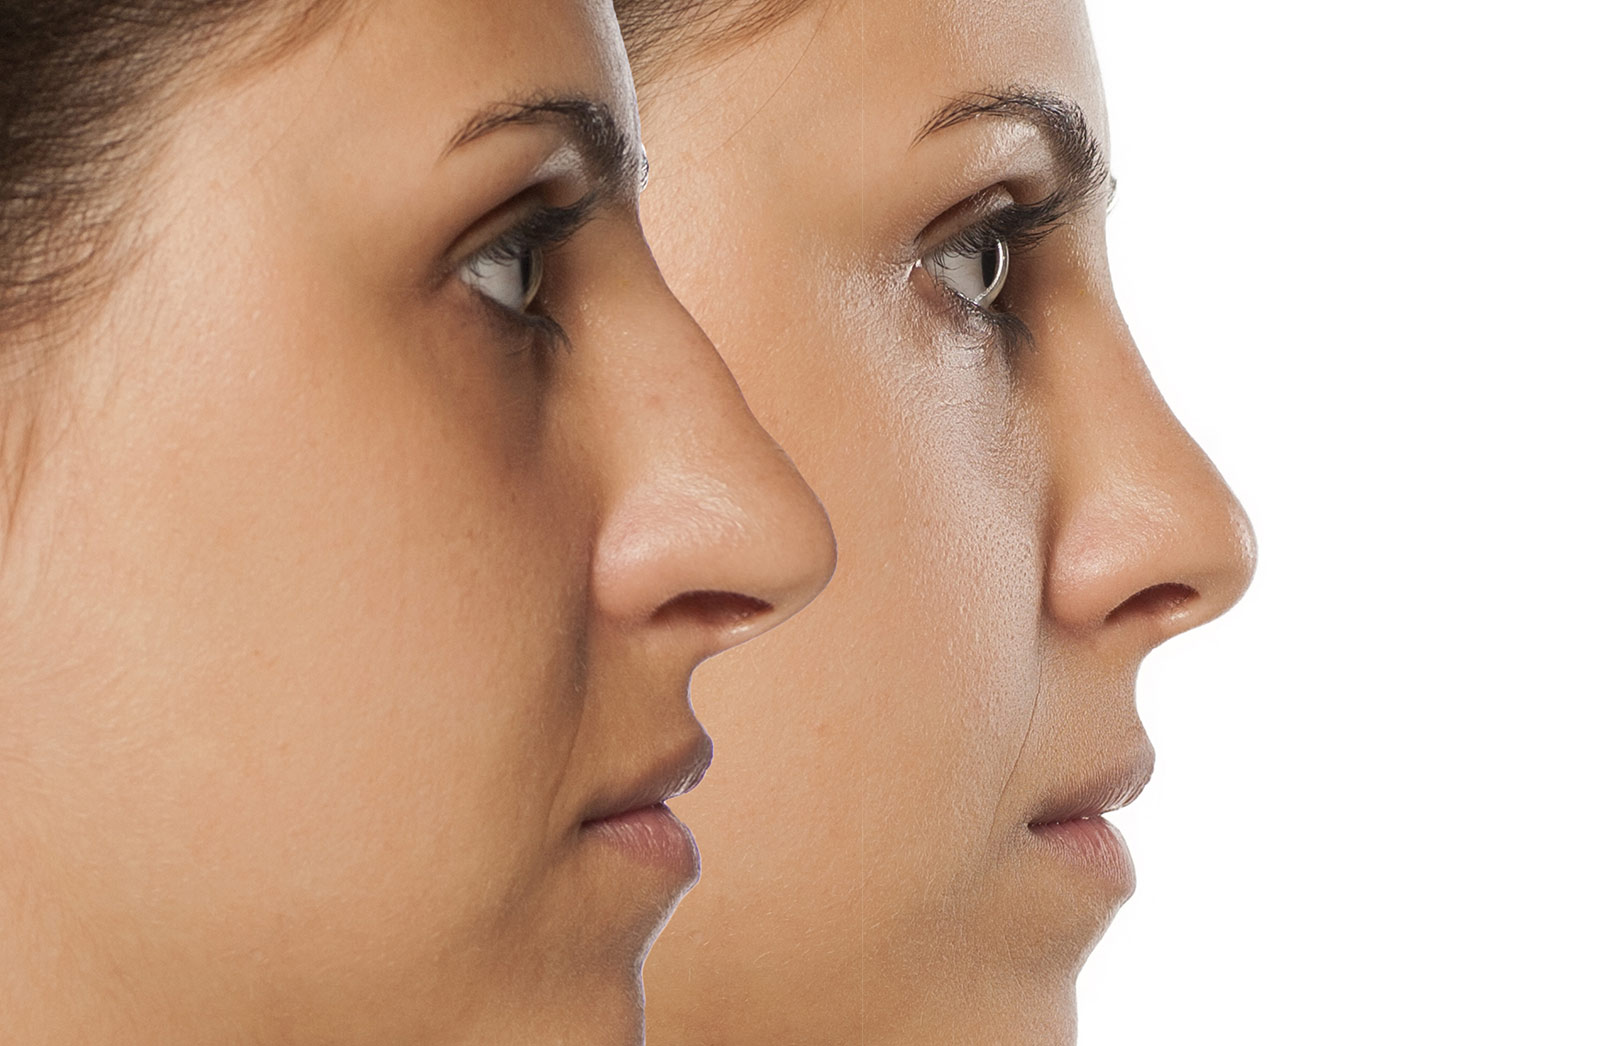 Woman's face, Before and After Rhinoplasty Treatment, nose, side view